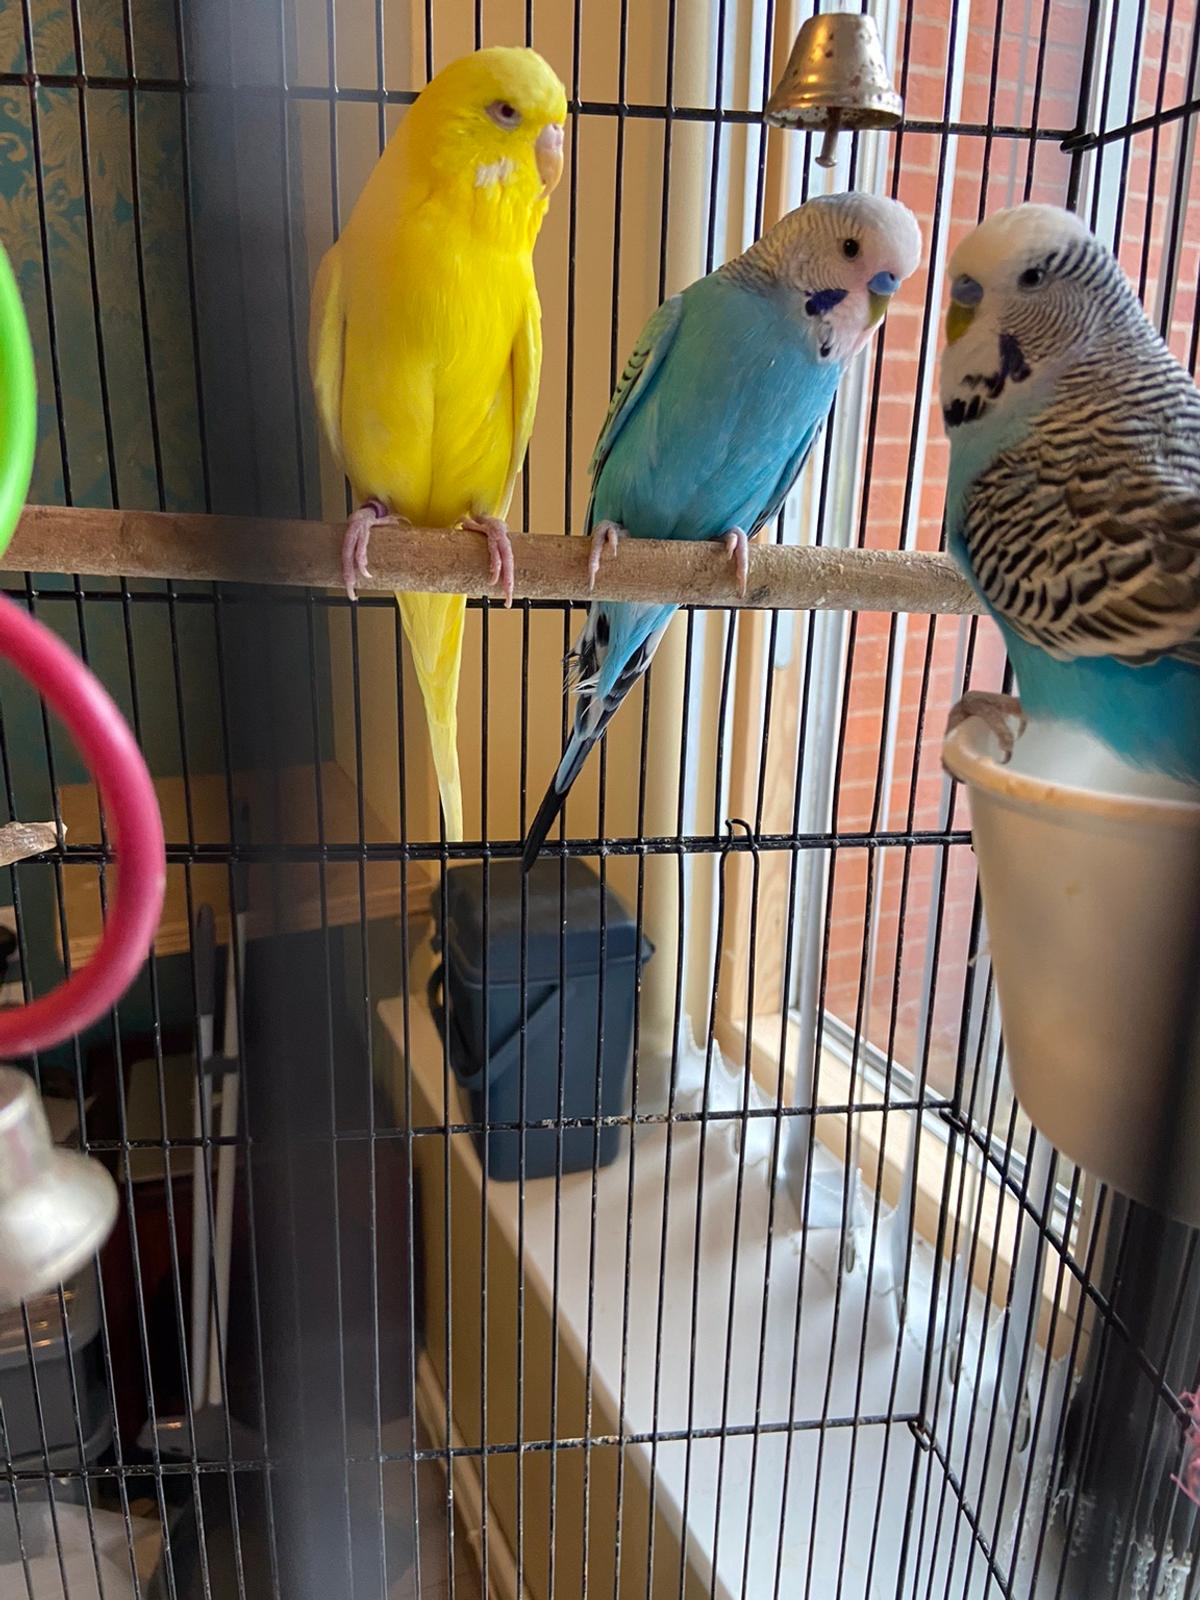 Budgie bird x 3 and full size CAGE with toys  What you see is what you get. 3 Birds and a lovely sturdy cage.  £20 per bird x 3 = £60  ONLY: £20 for cage  Would like to sell together.  1 couple, and 1 blue bird single